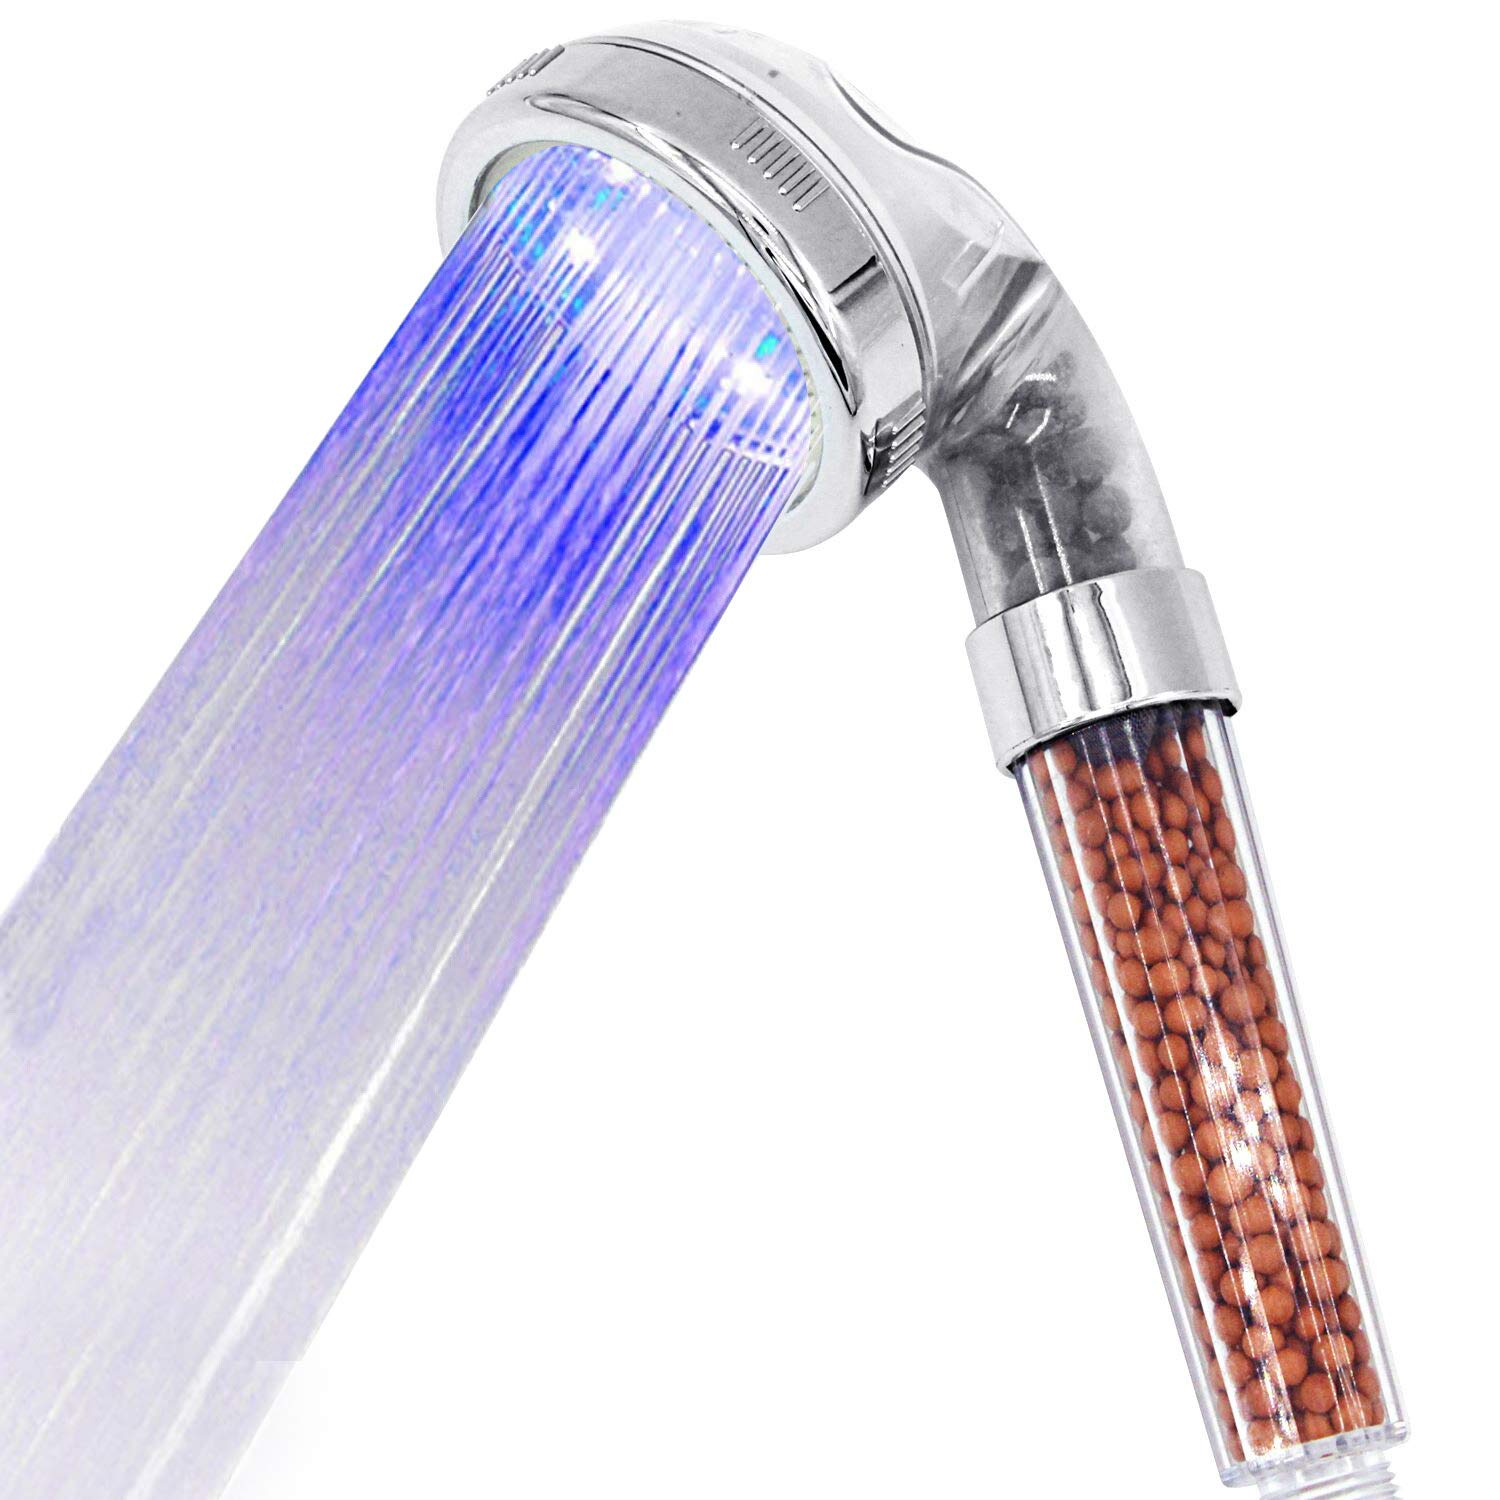 LED Shower Head Handheld, High-Pressure Water Saving Negative Ionic Double Filter Showerhead for Dry Hair & Skin SPA! 3 Color Changes YUUVE